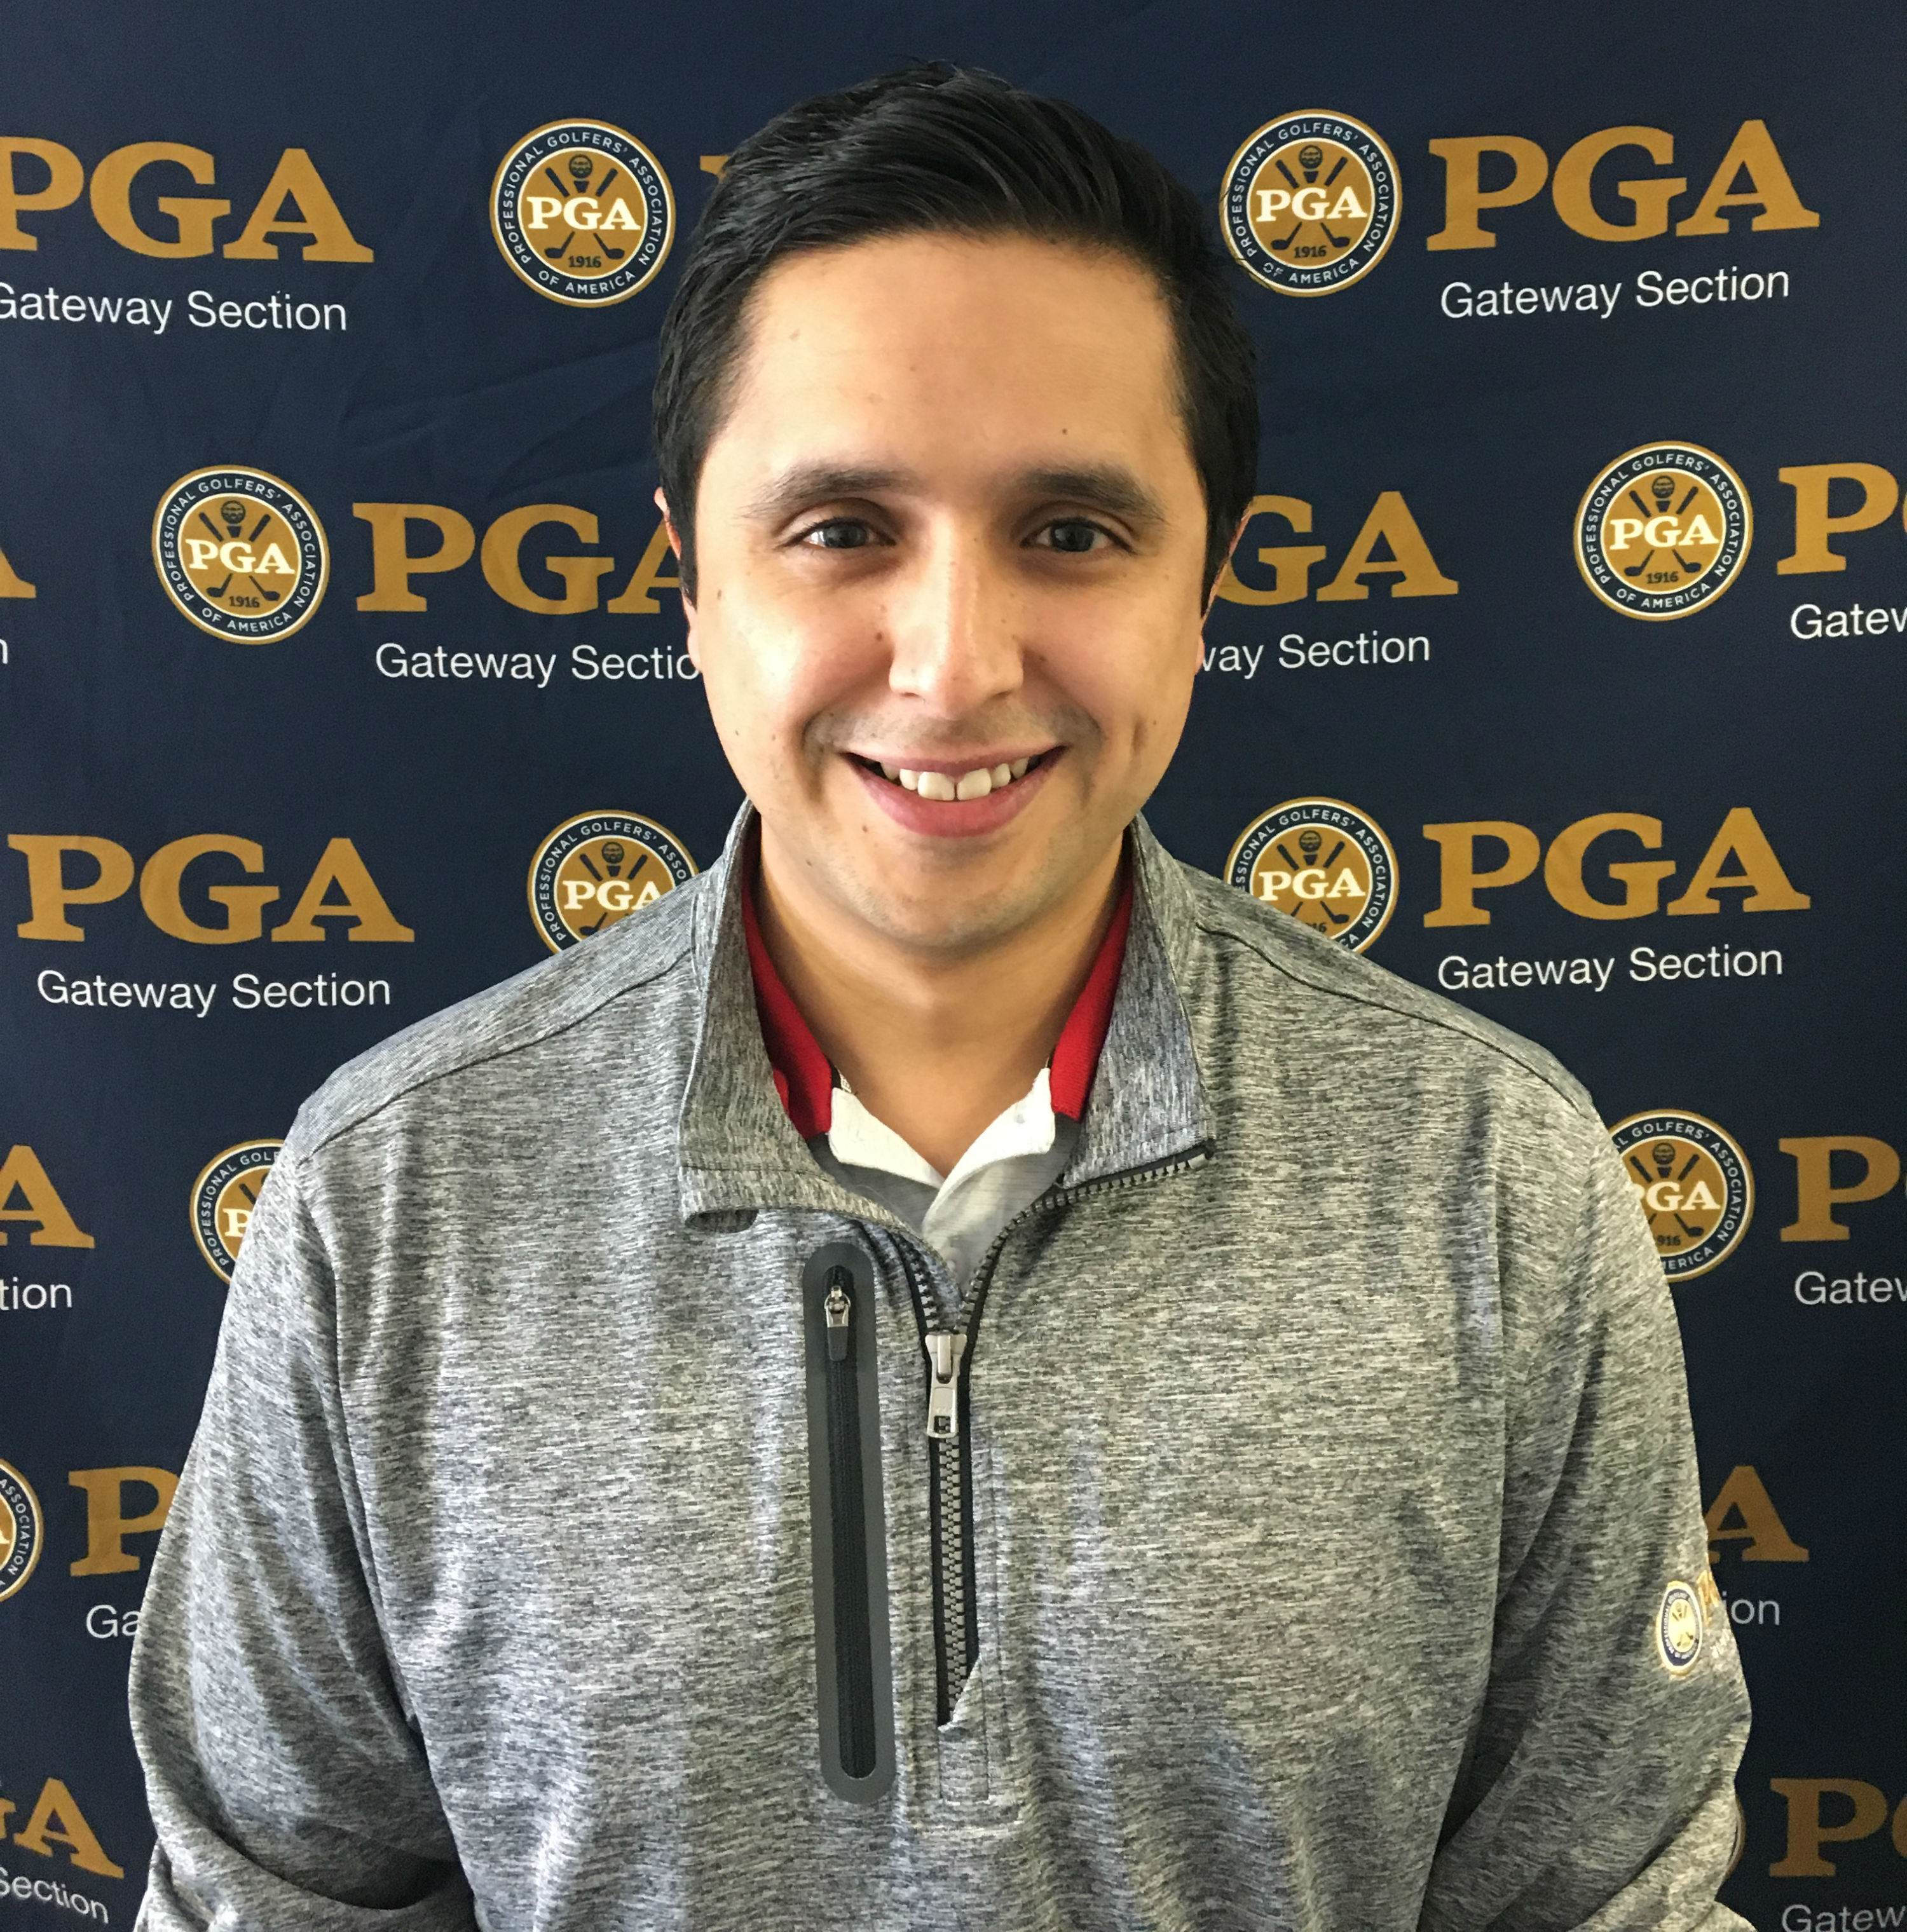 GATEWAY PGA SECTION SELECTS FERNANDO MOLINA AS ITS FIRST PGA WORKS FELLOW